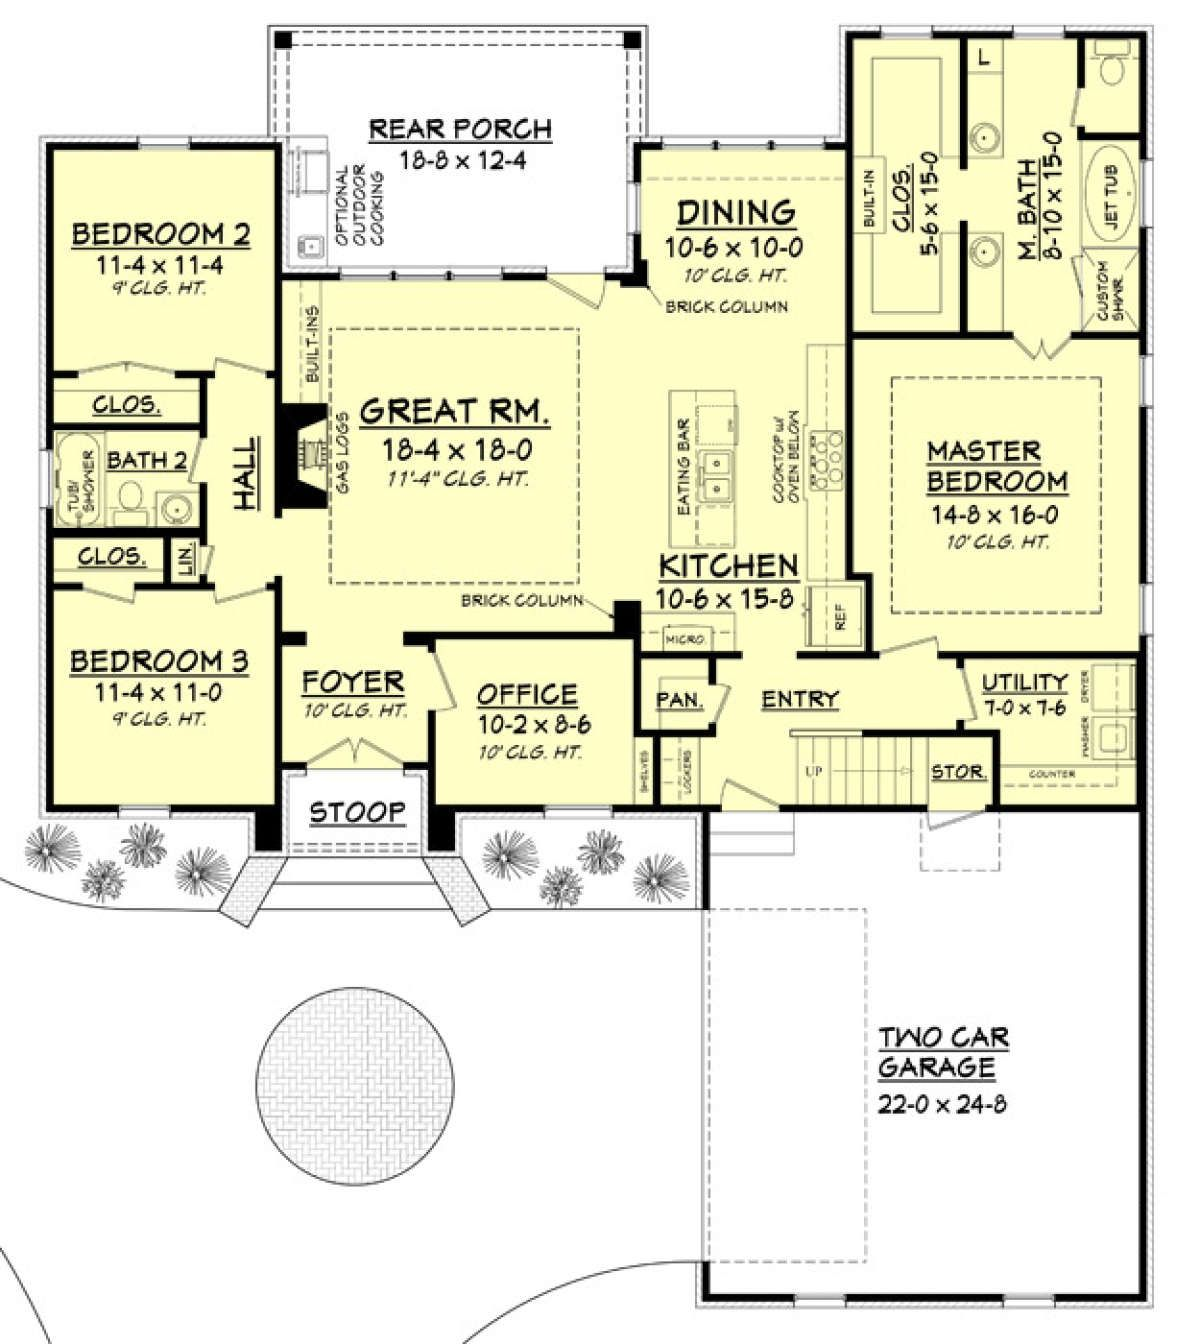 House Plan 041 00109 French Country Plan 1 870 Square Feet 3 Bedrooms 2 Bathrooms Acadian House Plans Floor Plan Layout House Plans Online